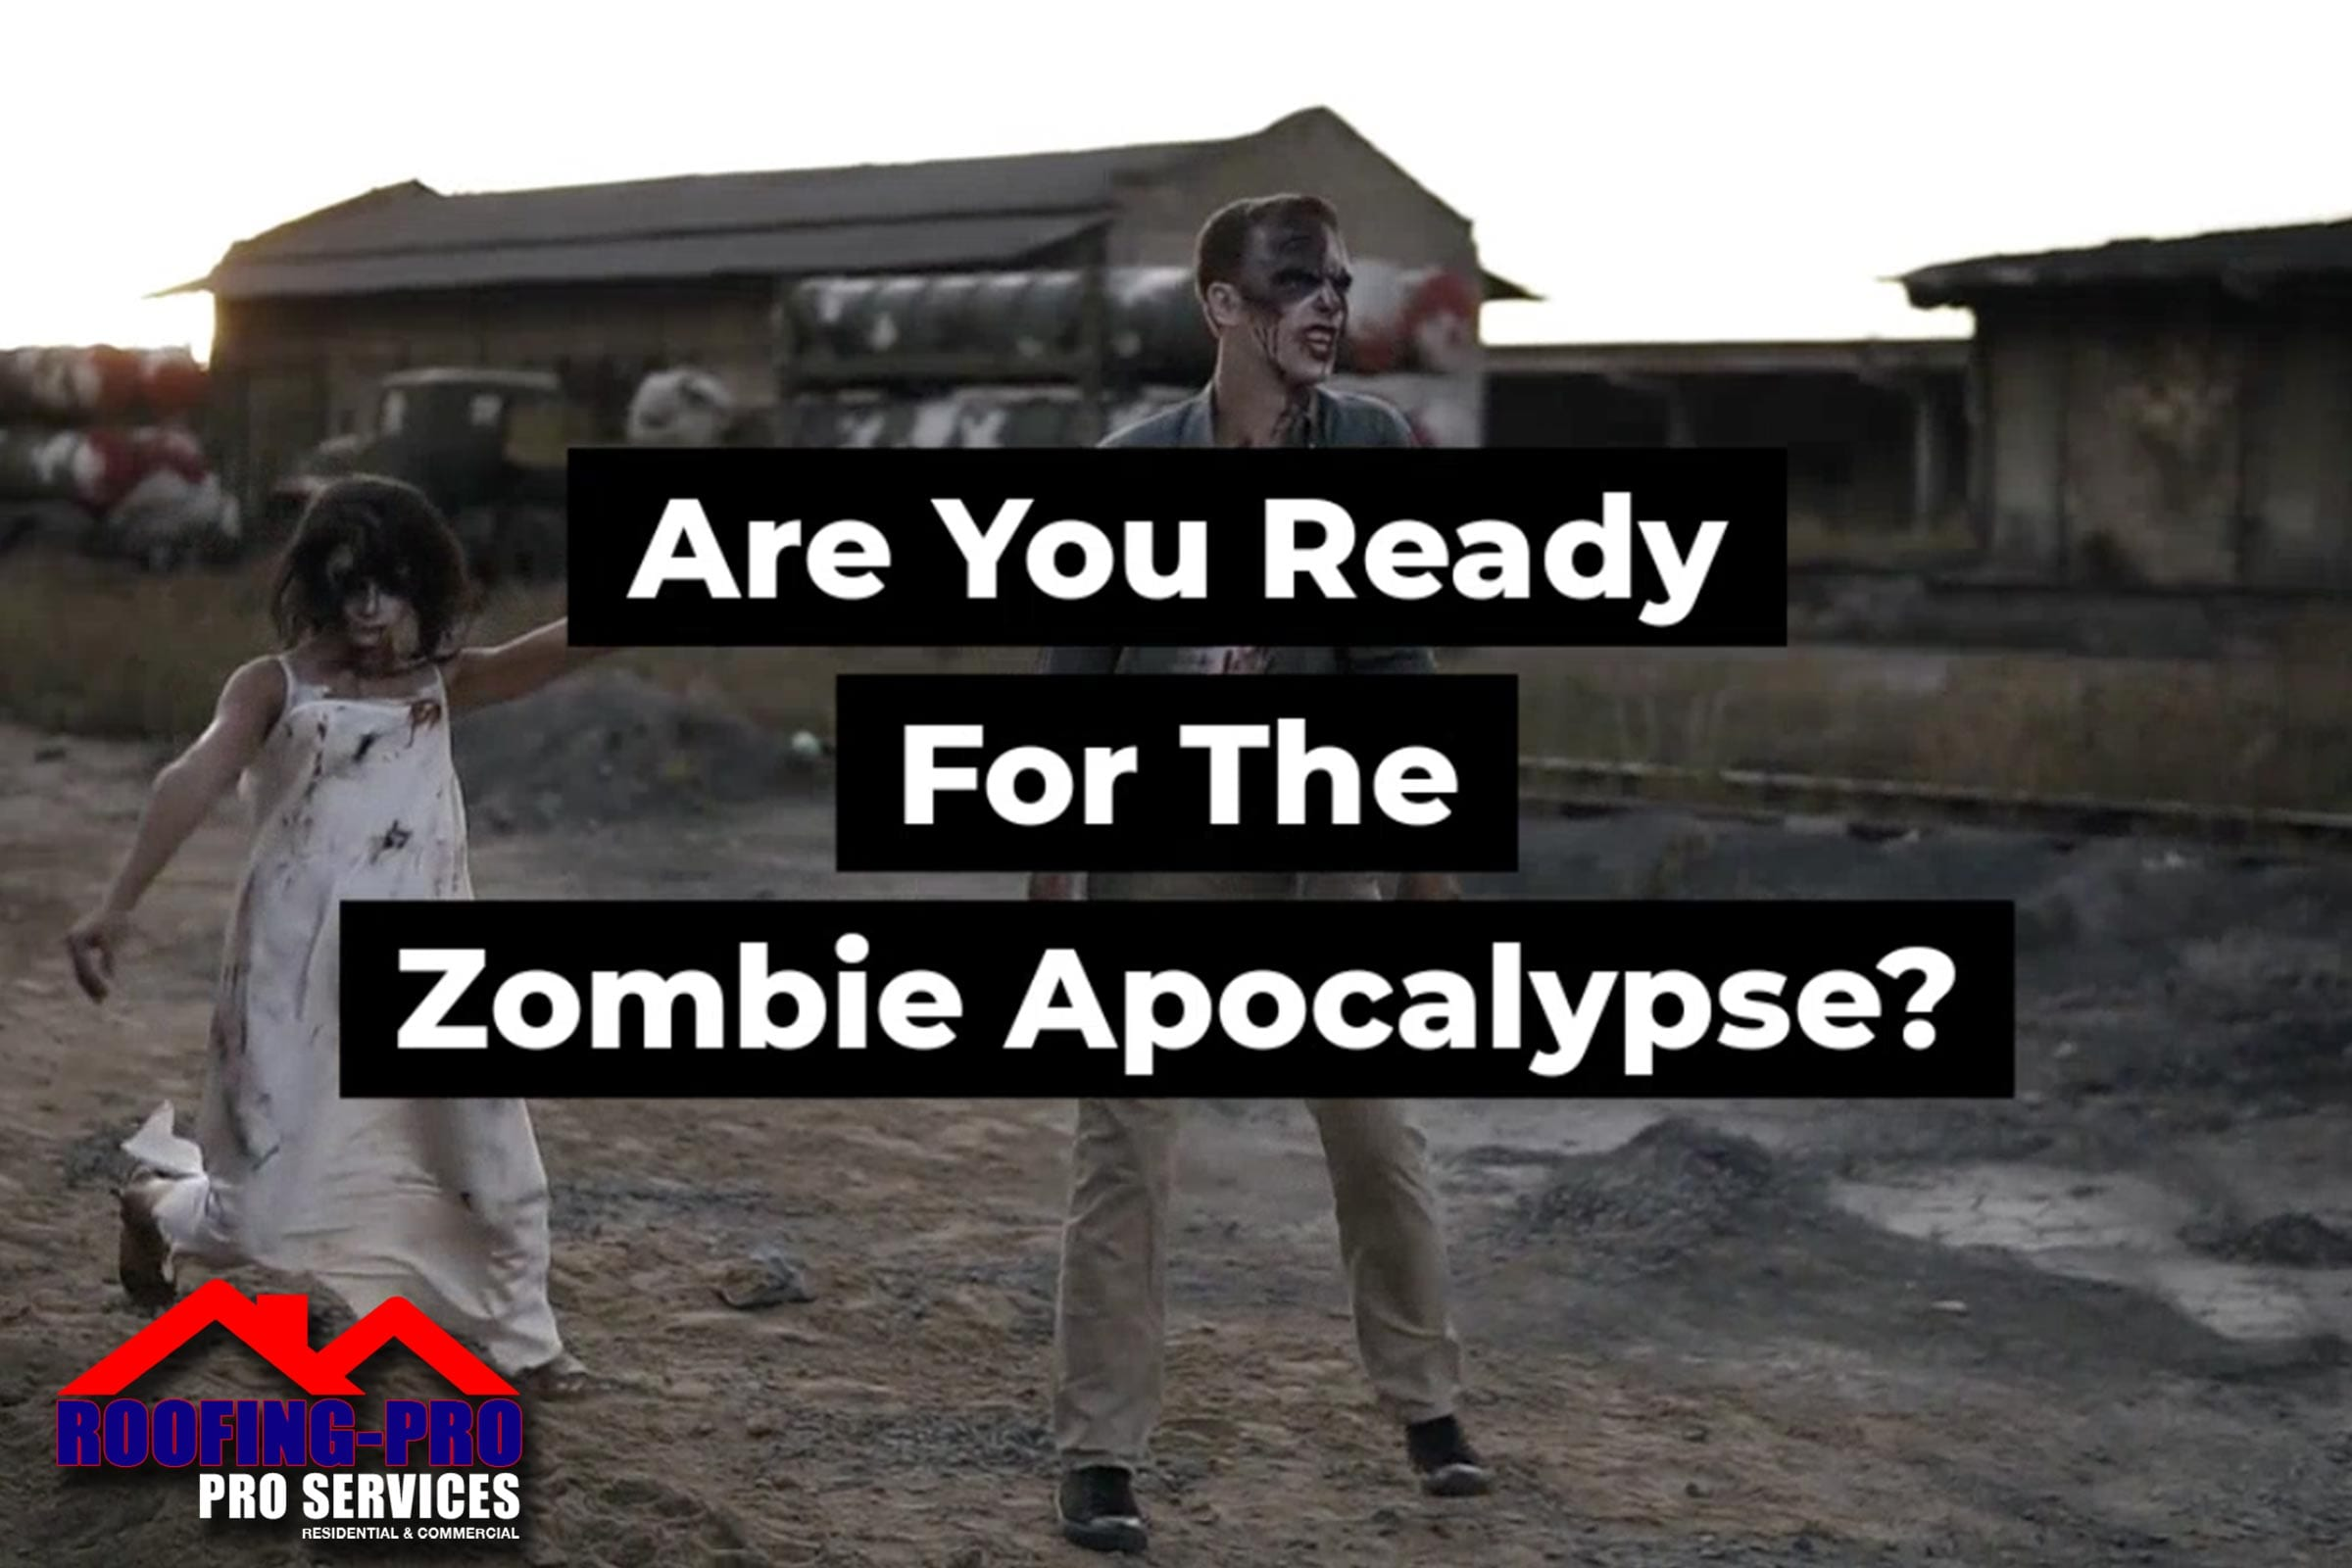 Roofing-Pro-Zombie-Apocalypse-Solar-Panels-off-the-Grid-with-solar-panel-roofing-systems